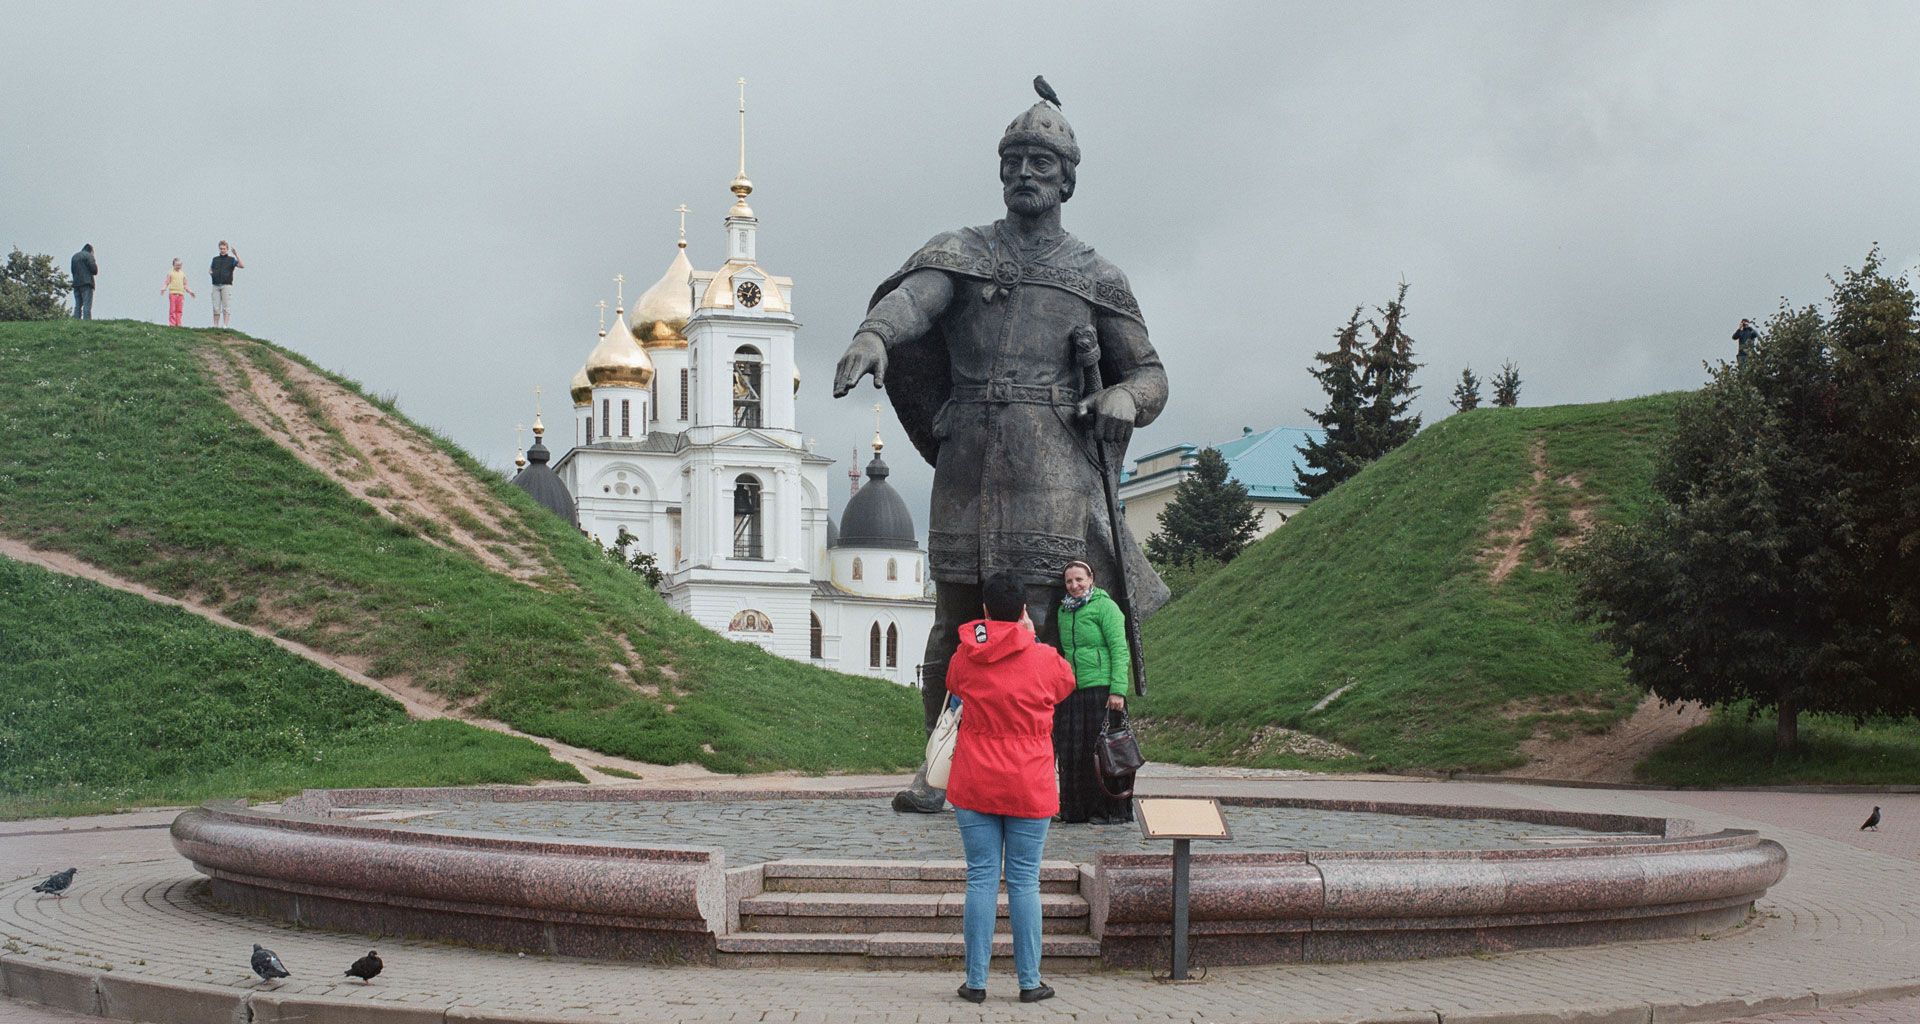 Lofty statues and roadside oddities: what can we learn about Russia in Moscow's margins?